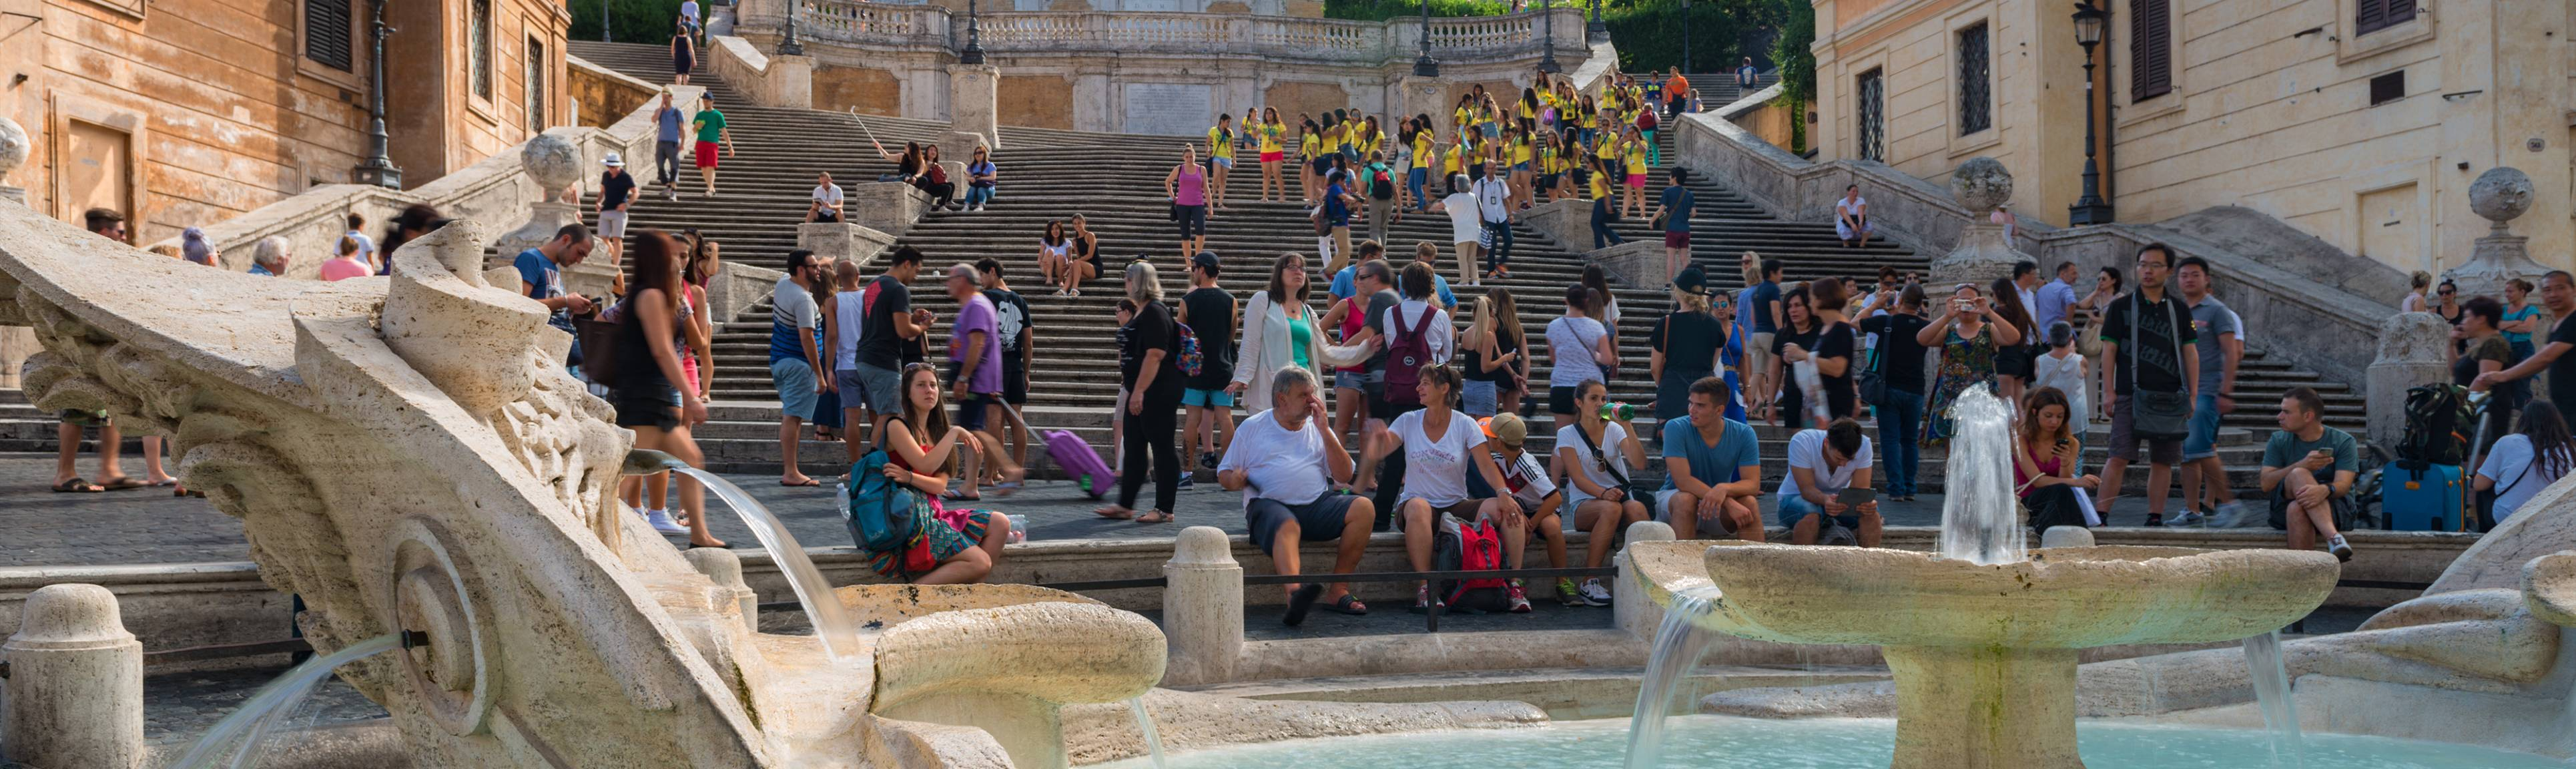 Visitors resting on the The Spanish Steps in Rome